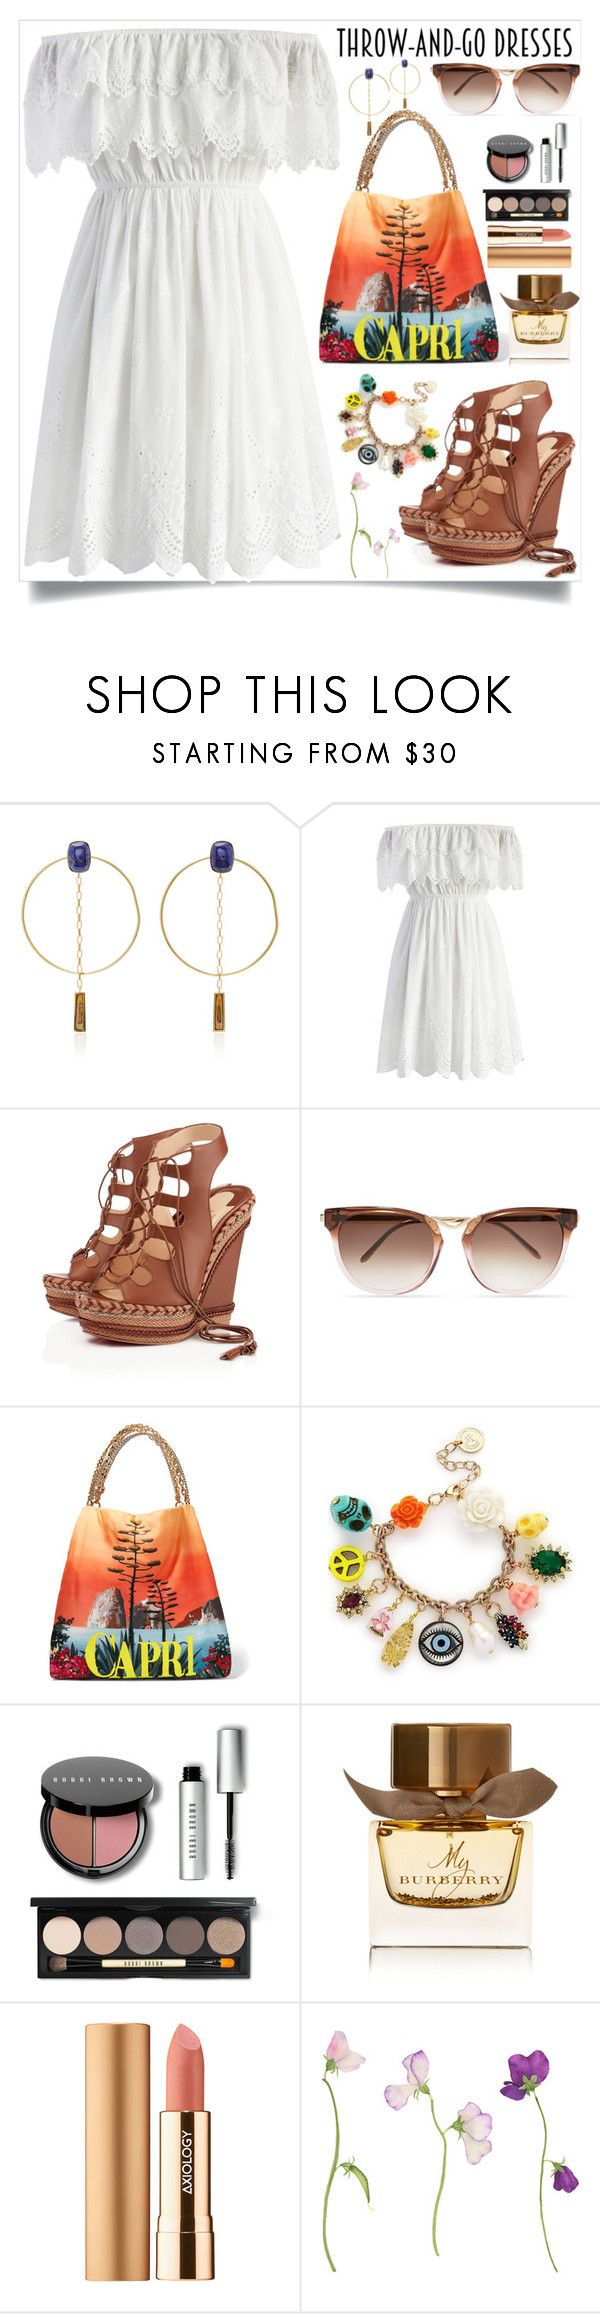 """""""Easy Outfitting: Throw-and-Go Dresses"""" by teto000 ❤ liked on Polyvore featuring Isabel Marant, Chicwish, Christian Louboutin, Thierry Lasry, Dolce&Gabbana, Anton Heunis, Bobbi Brown Cosmetics, Burberry, Axiology and easydresses"""